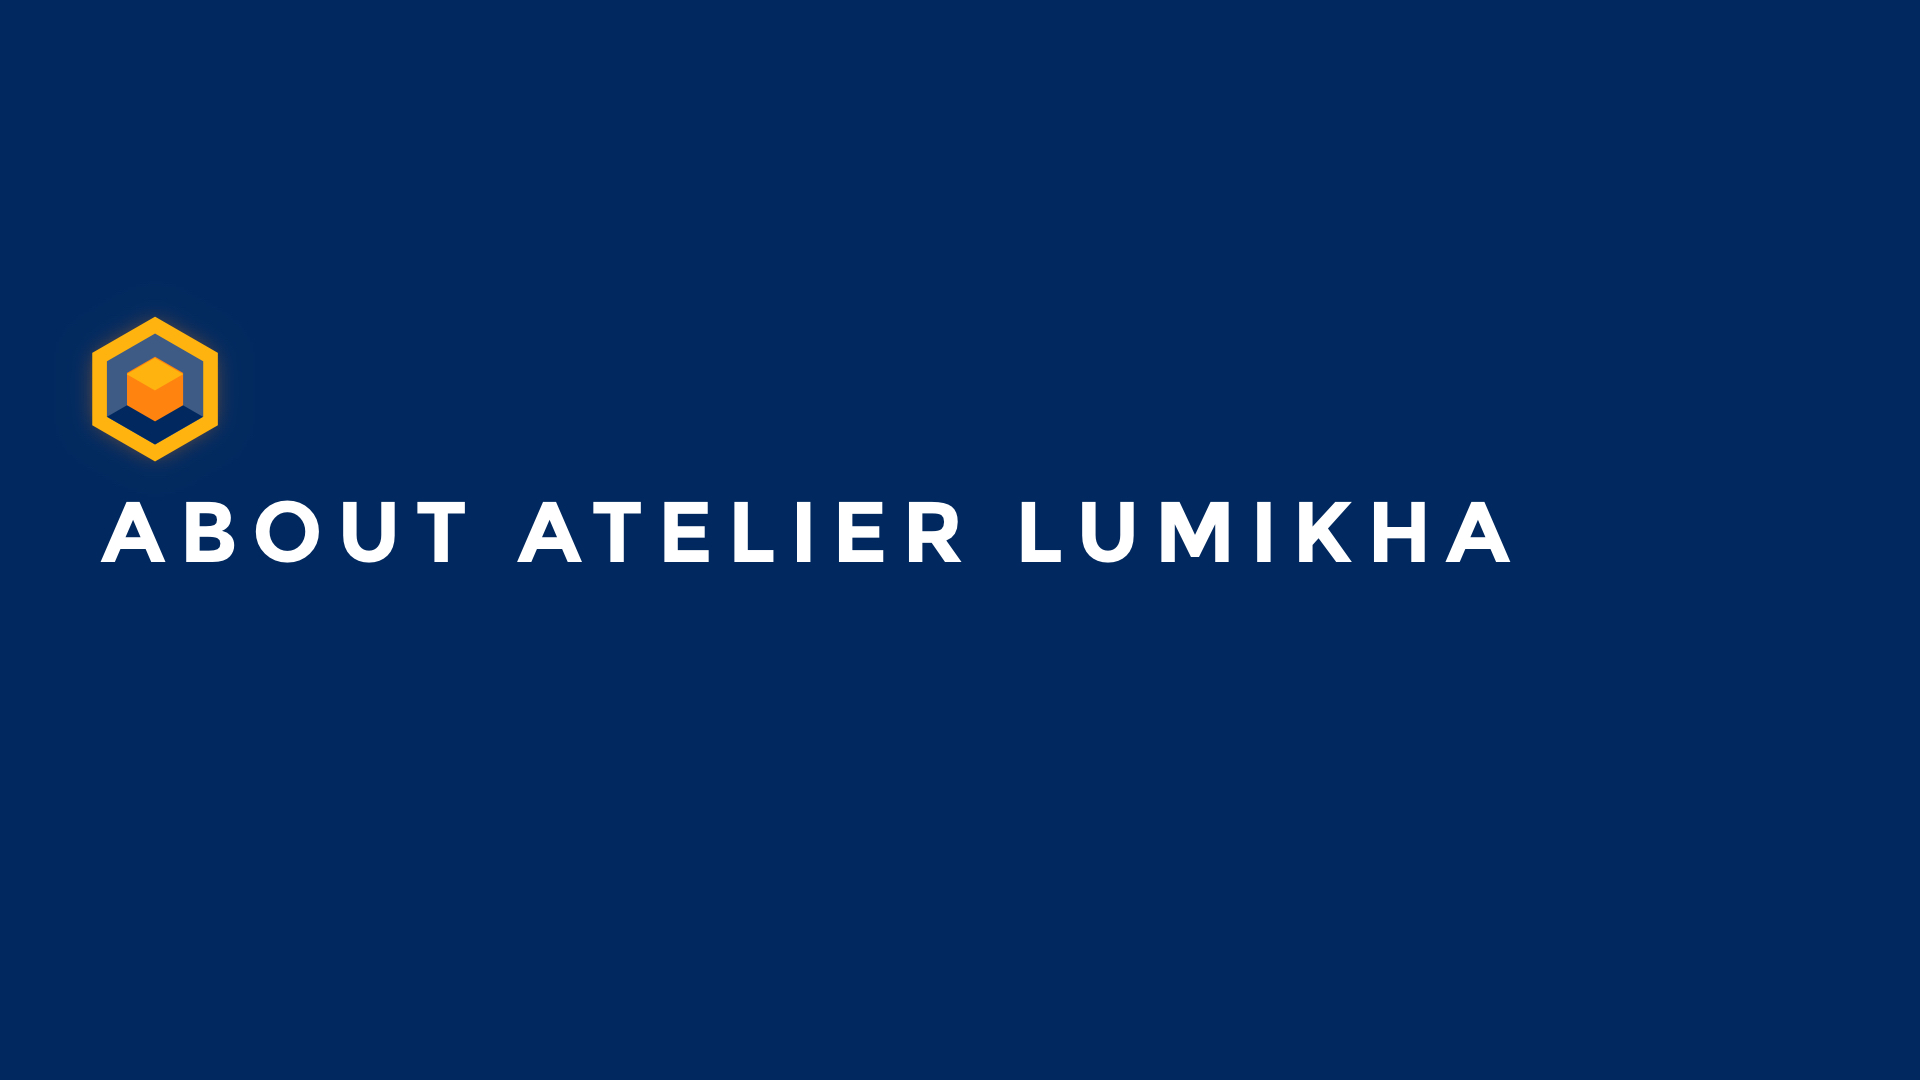 Overview of Atelier Lumikha